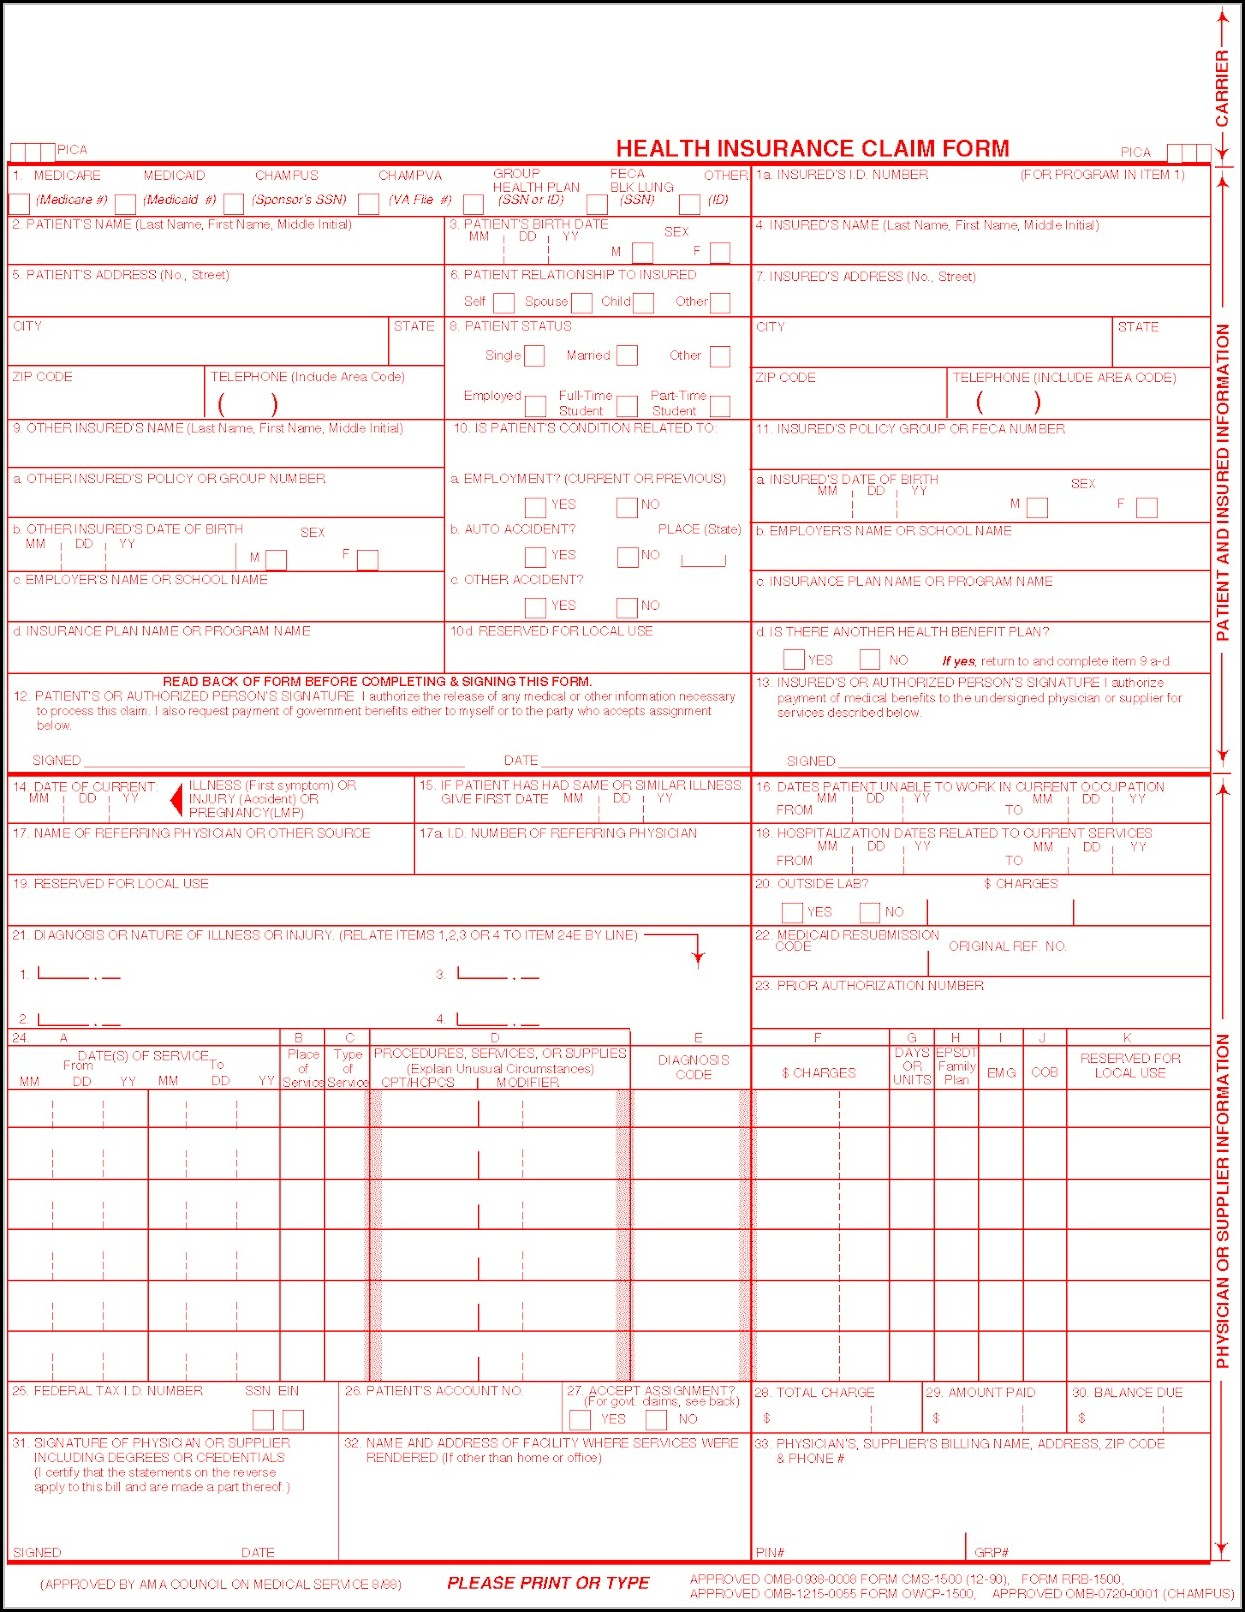 Hcfa 1500 Claim Form Place Of Service Codes